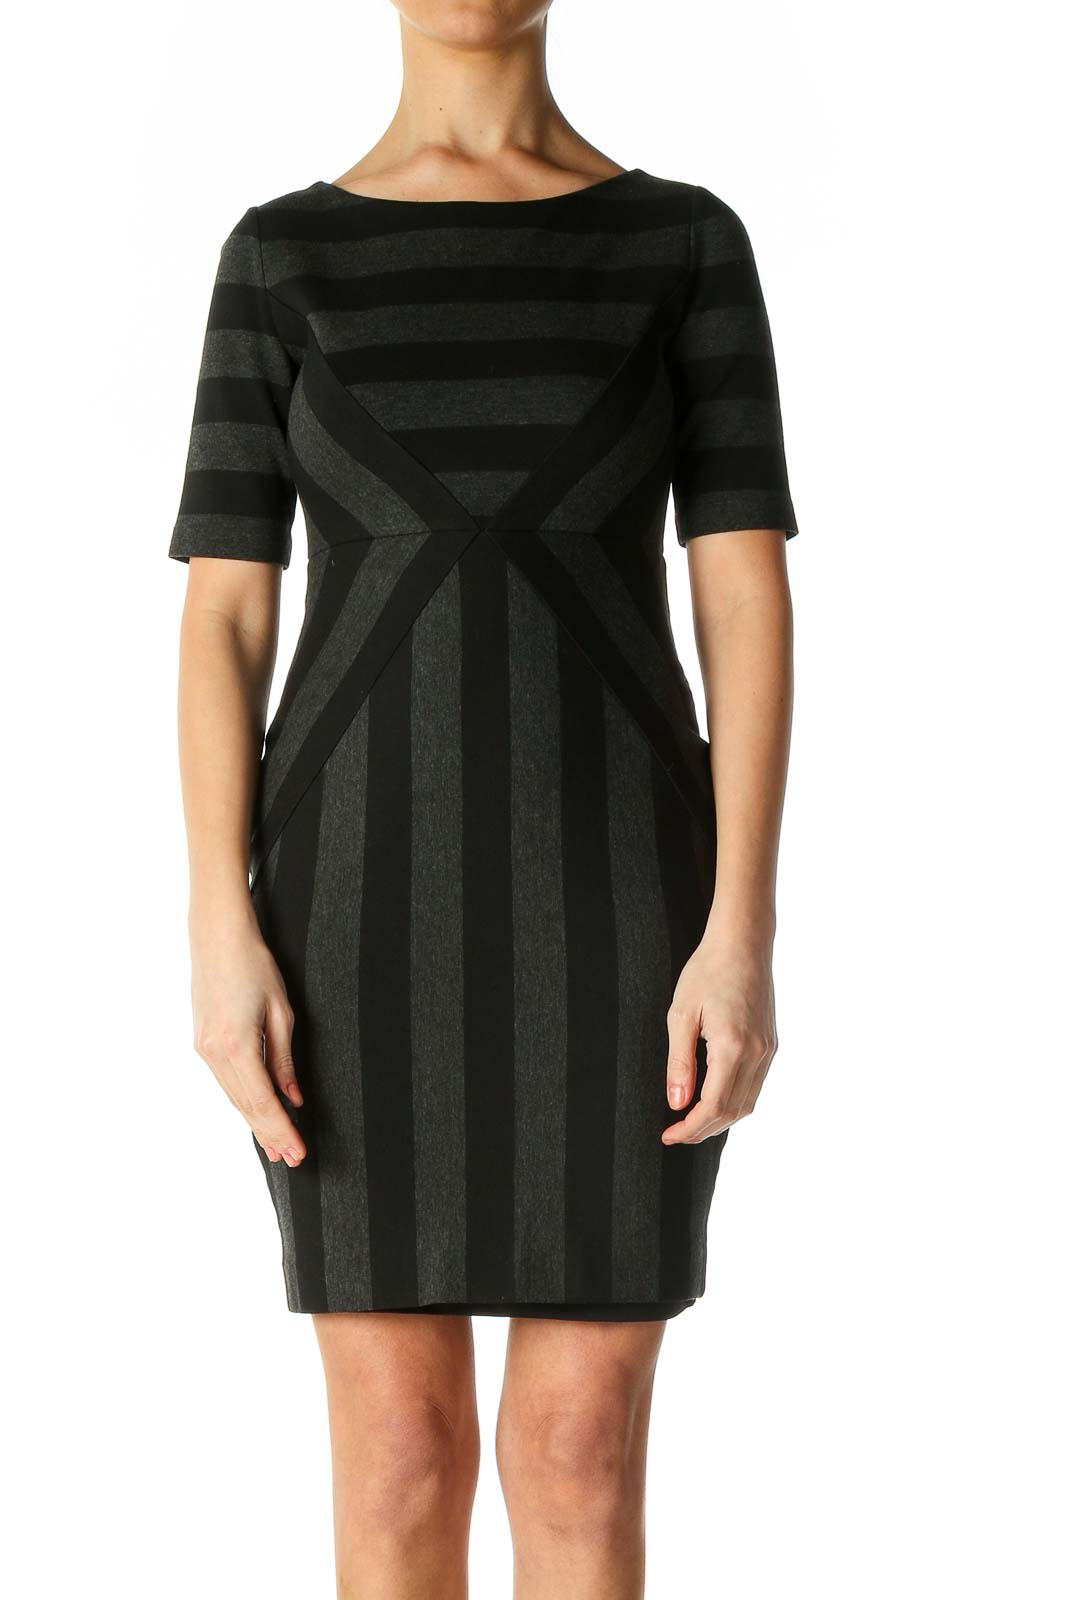 Black Solid Day A-Line Dress Front